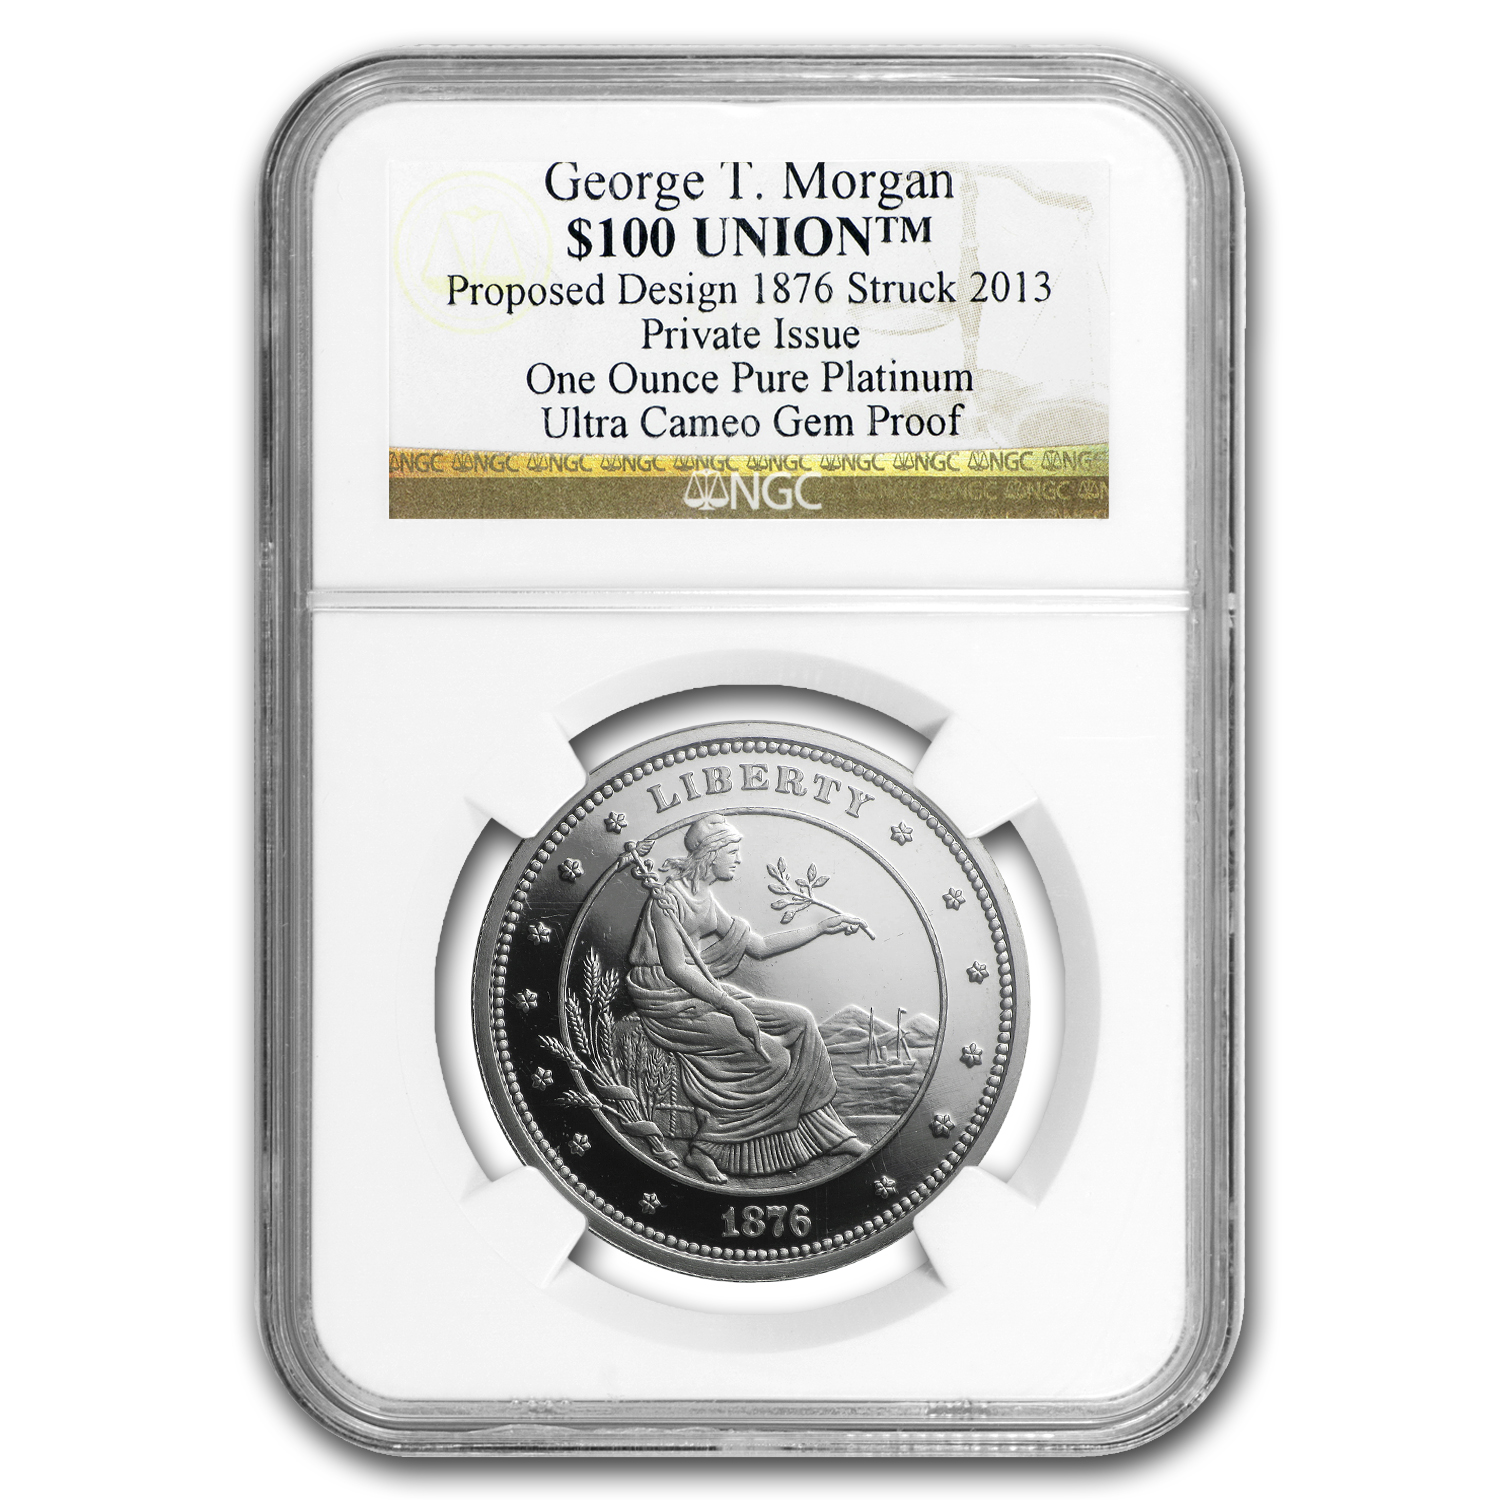 1 oz Platinum $100 Union George T. Morgan NGC Proof